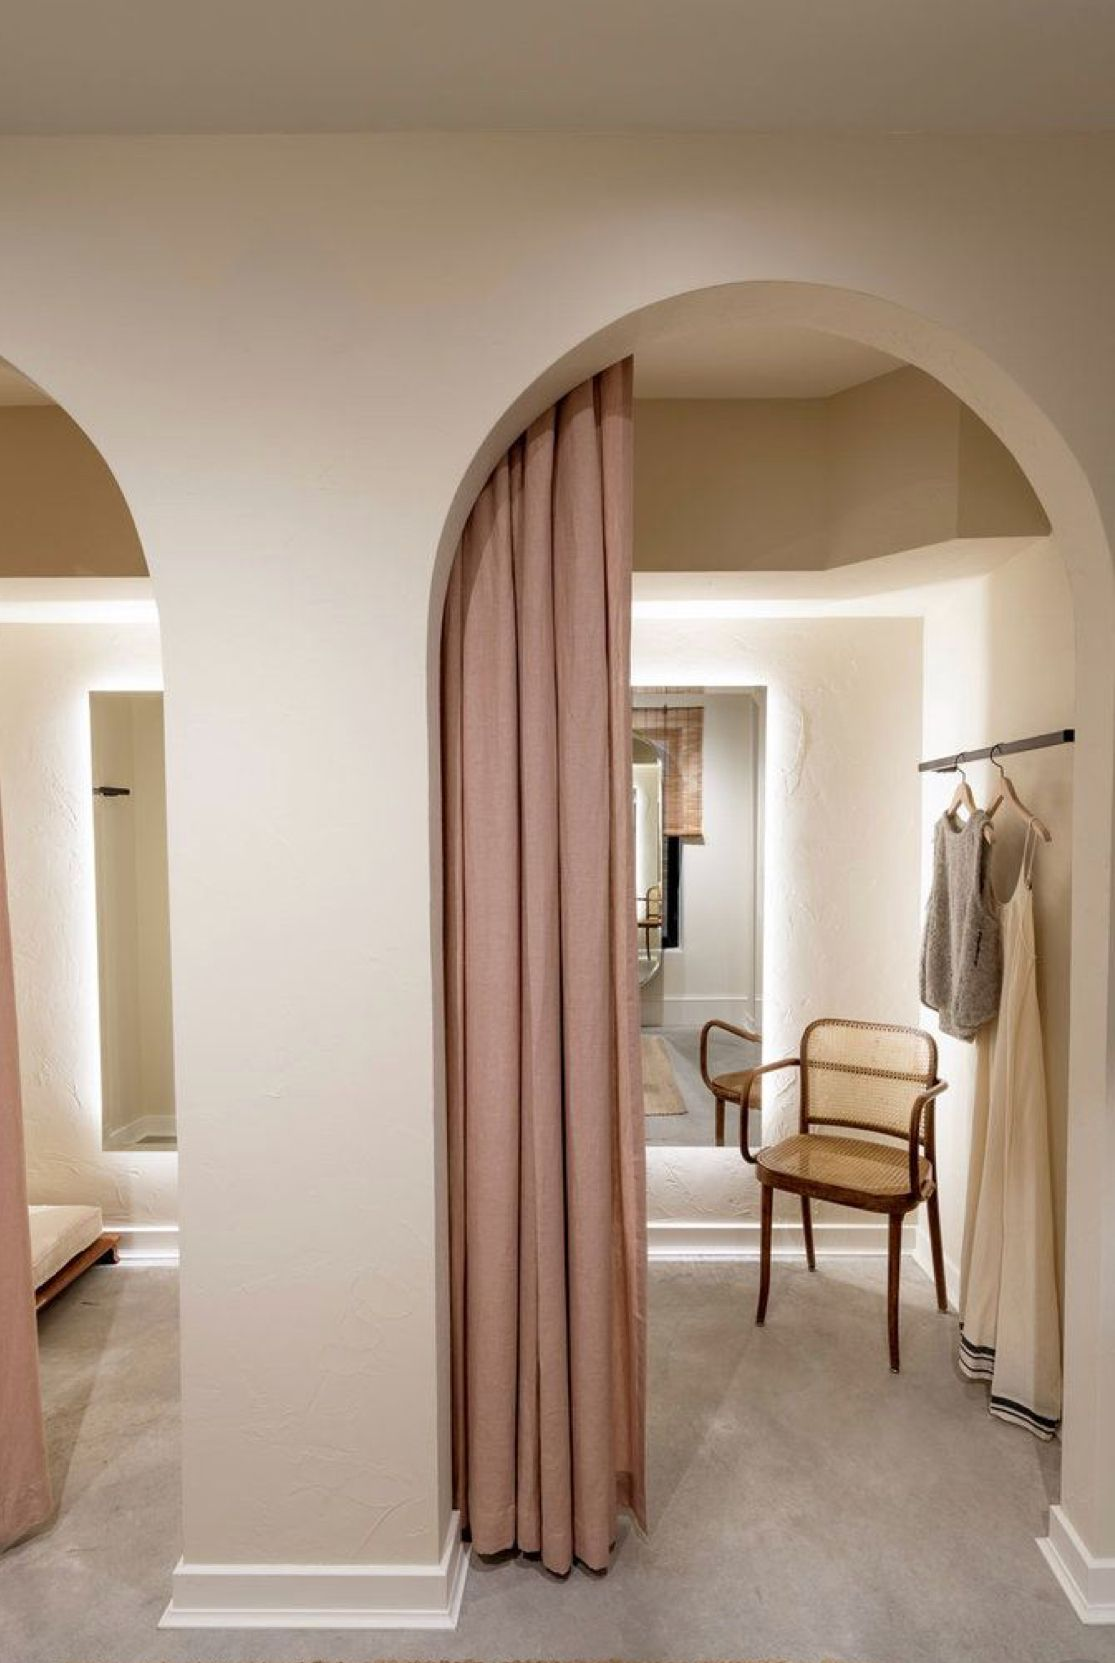 Fitting Room Designs For Retail: A Very Close Replication Of My Vision For Fitting Rooms